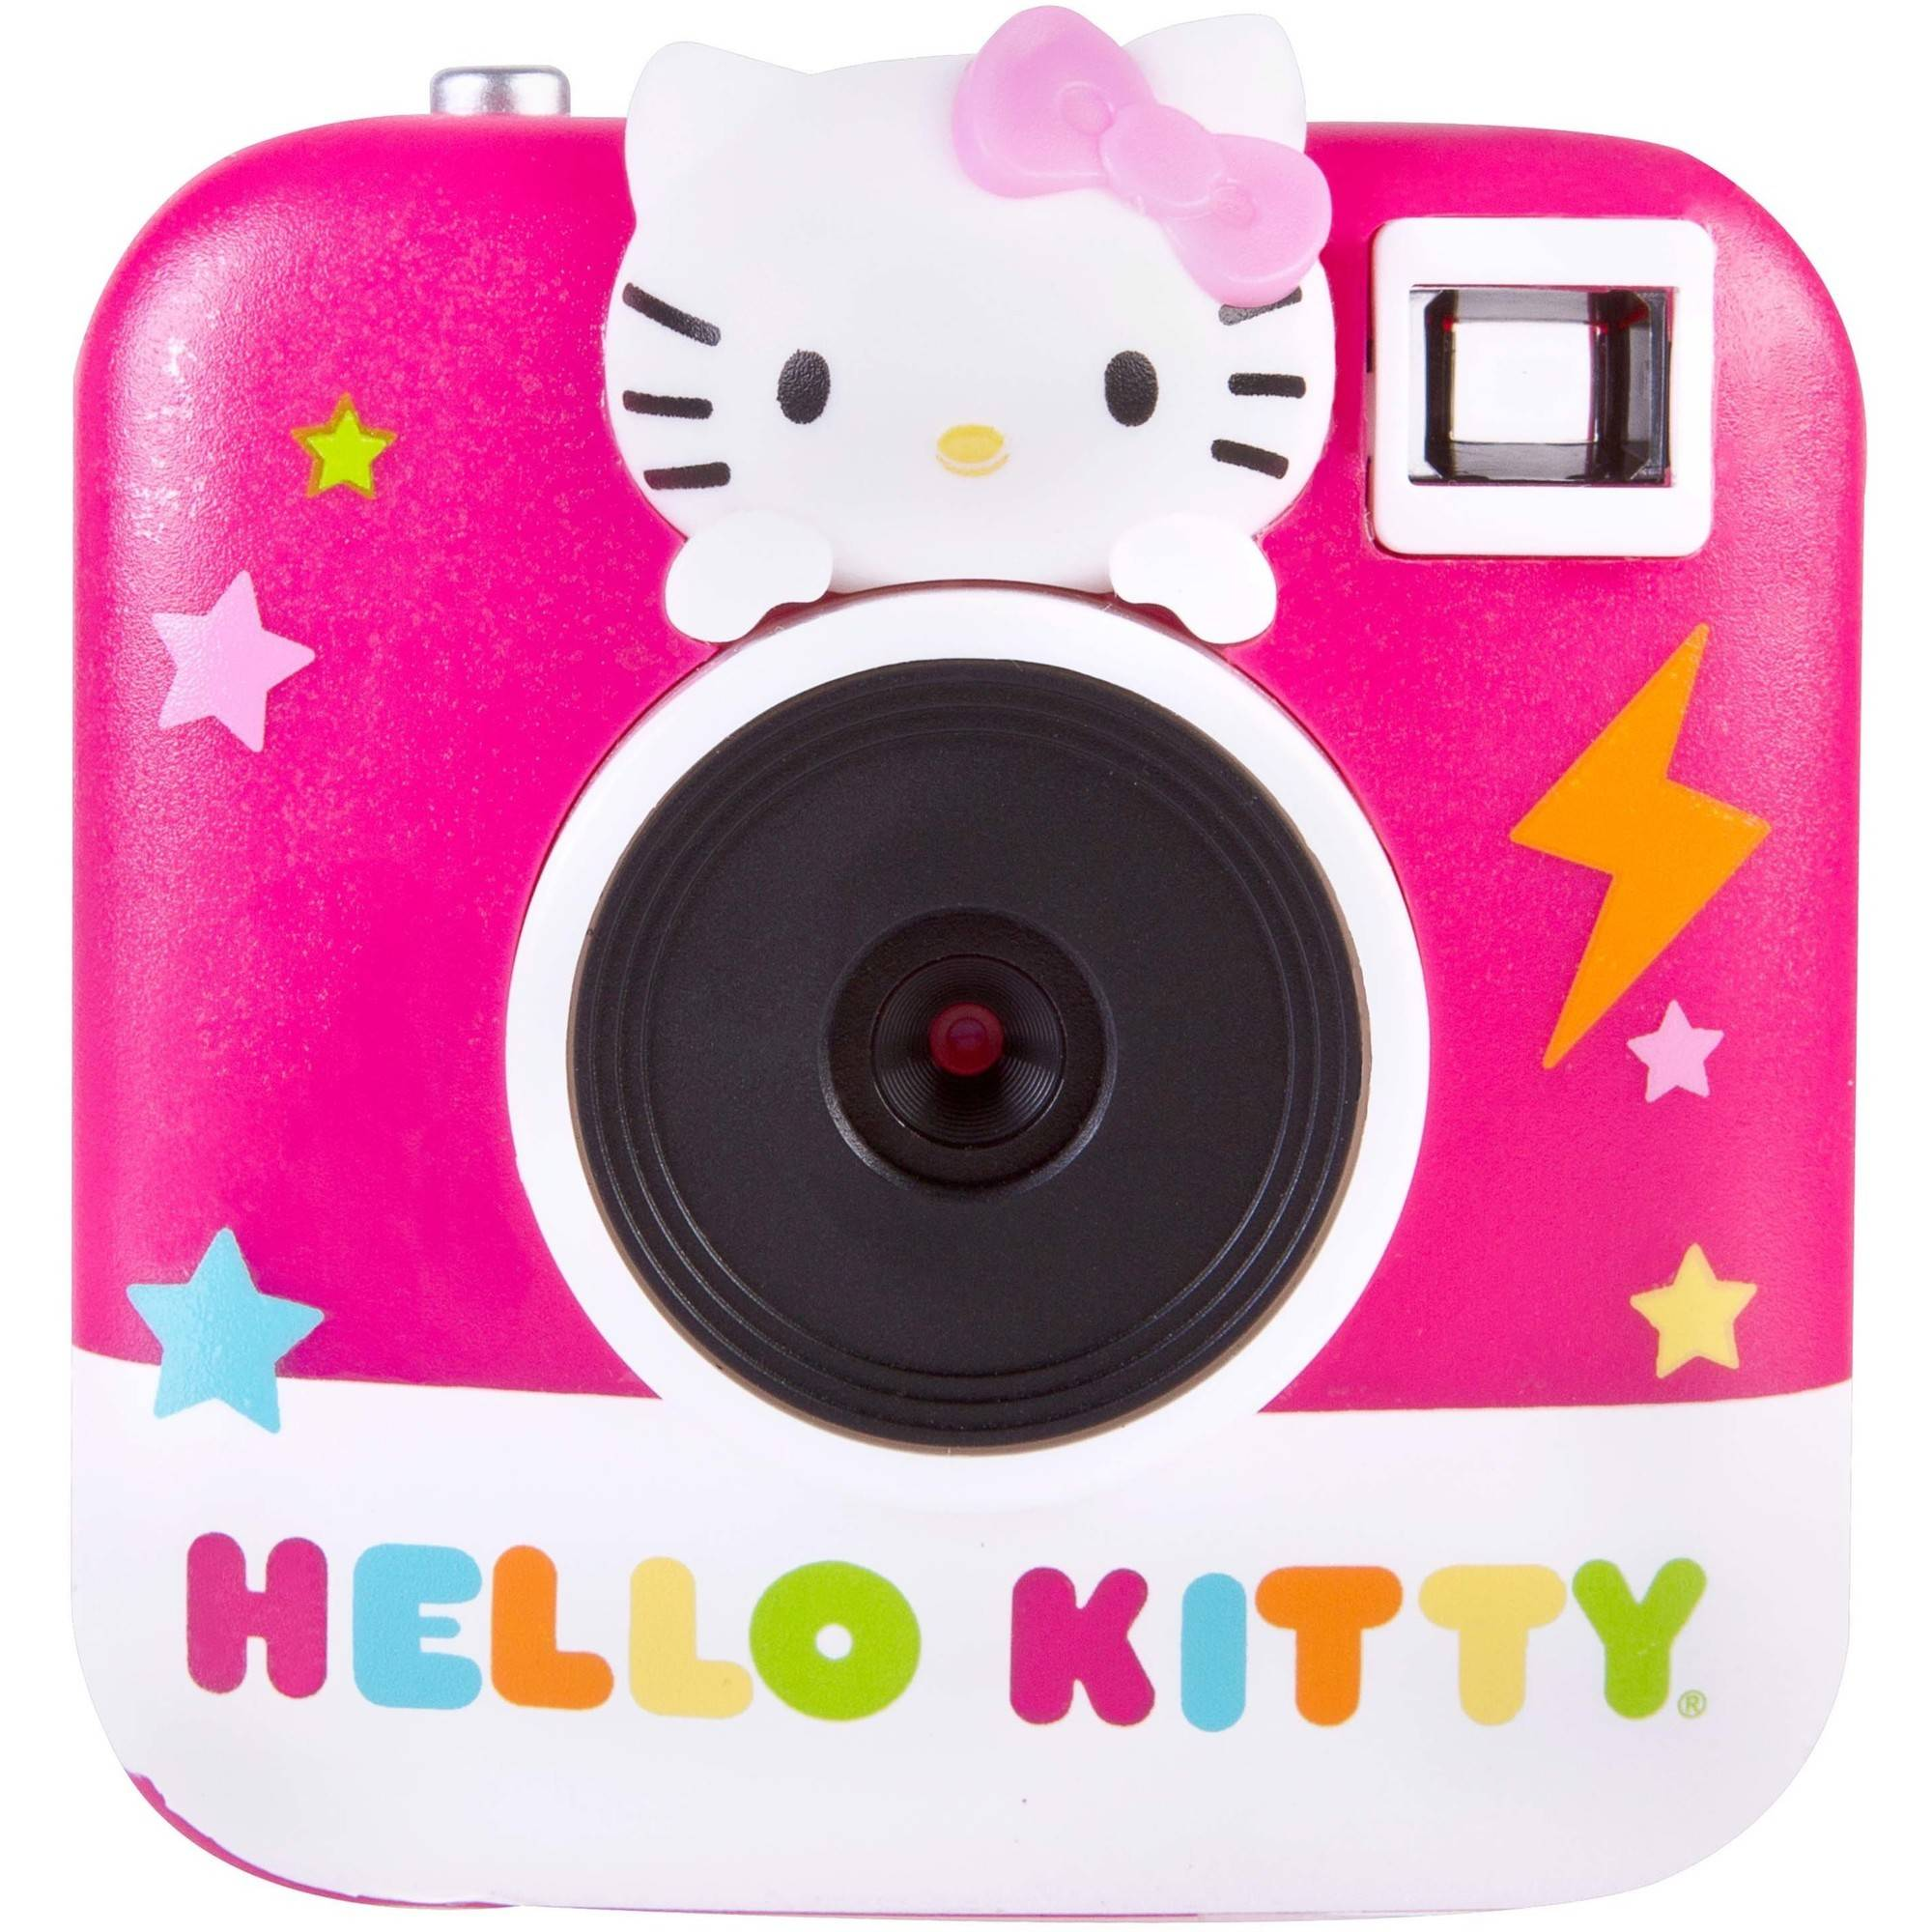 "Hello Kitty Snap N Share 2.1MP Digital Camera with 1.5"" Preview Screen"